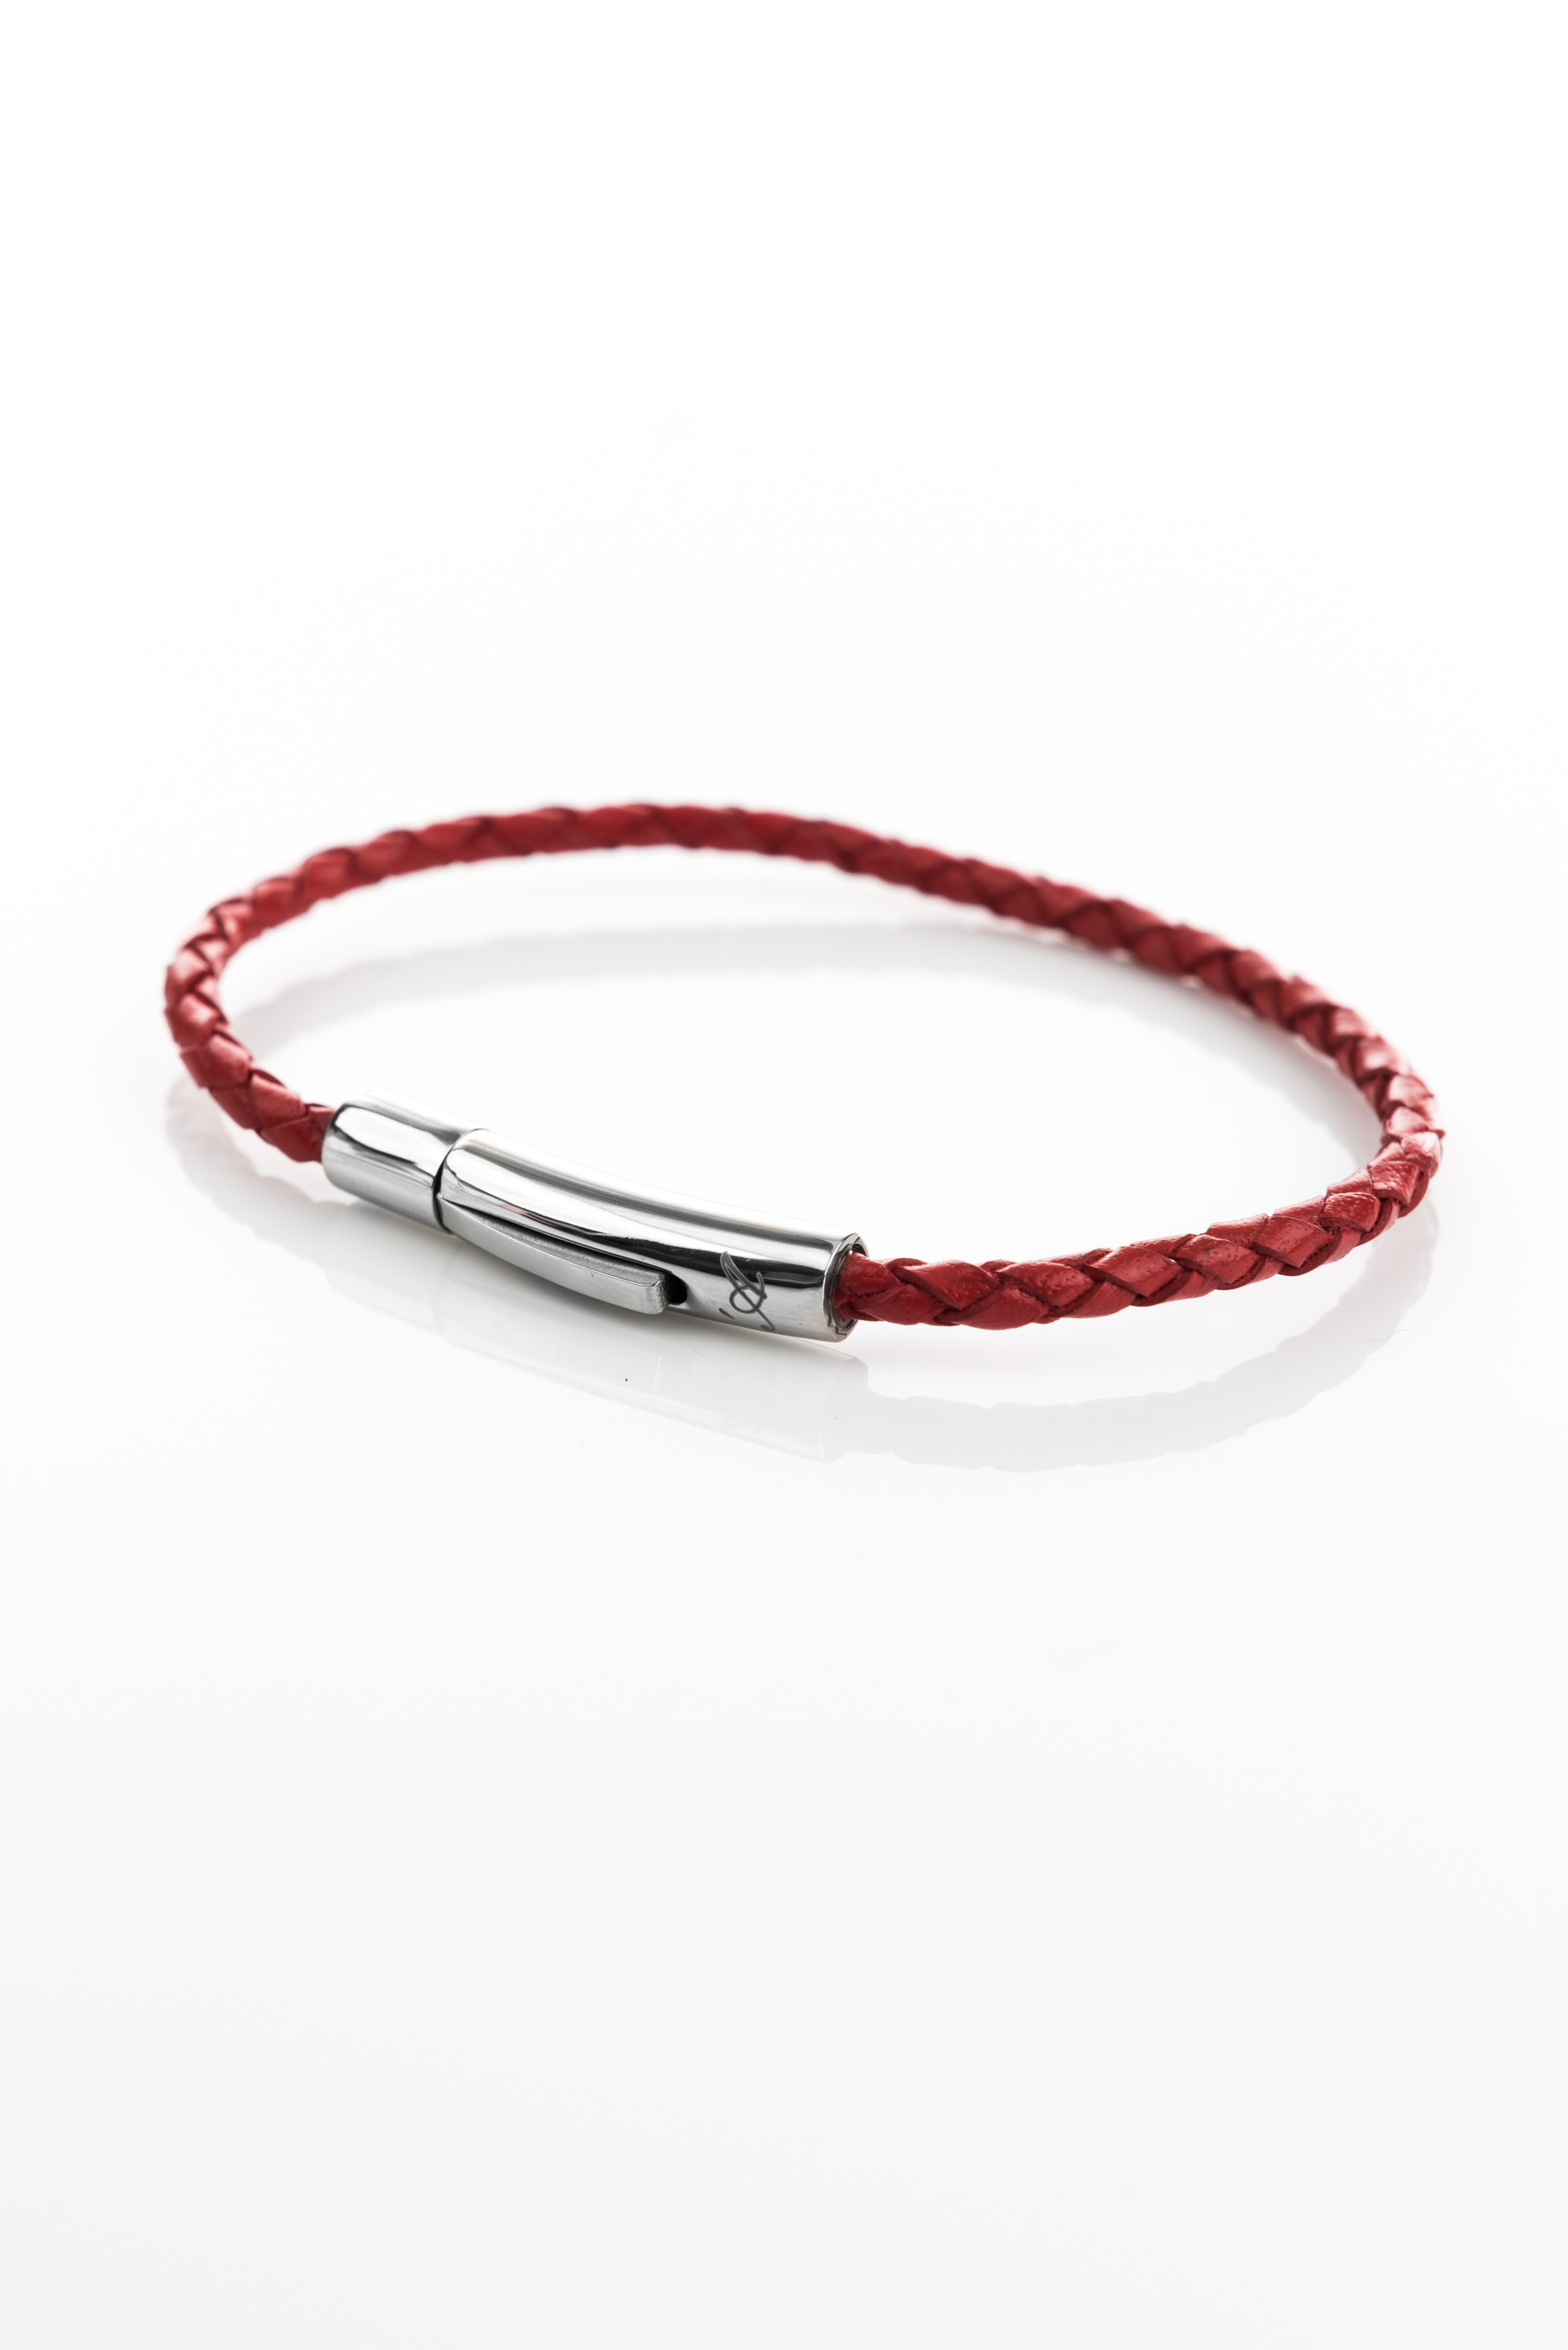 red lucky clipped rope product bracelet the bank rev